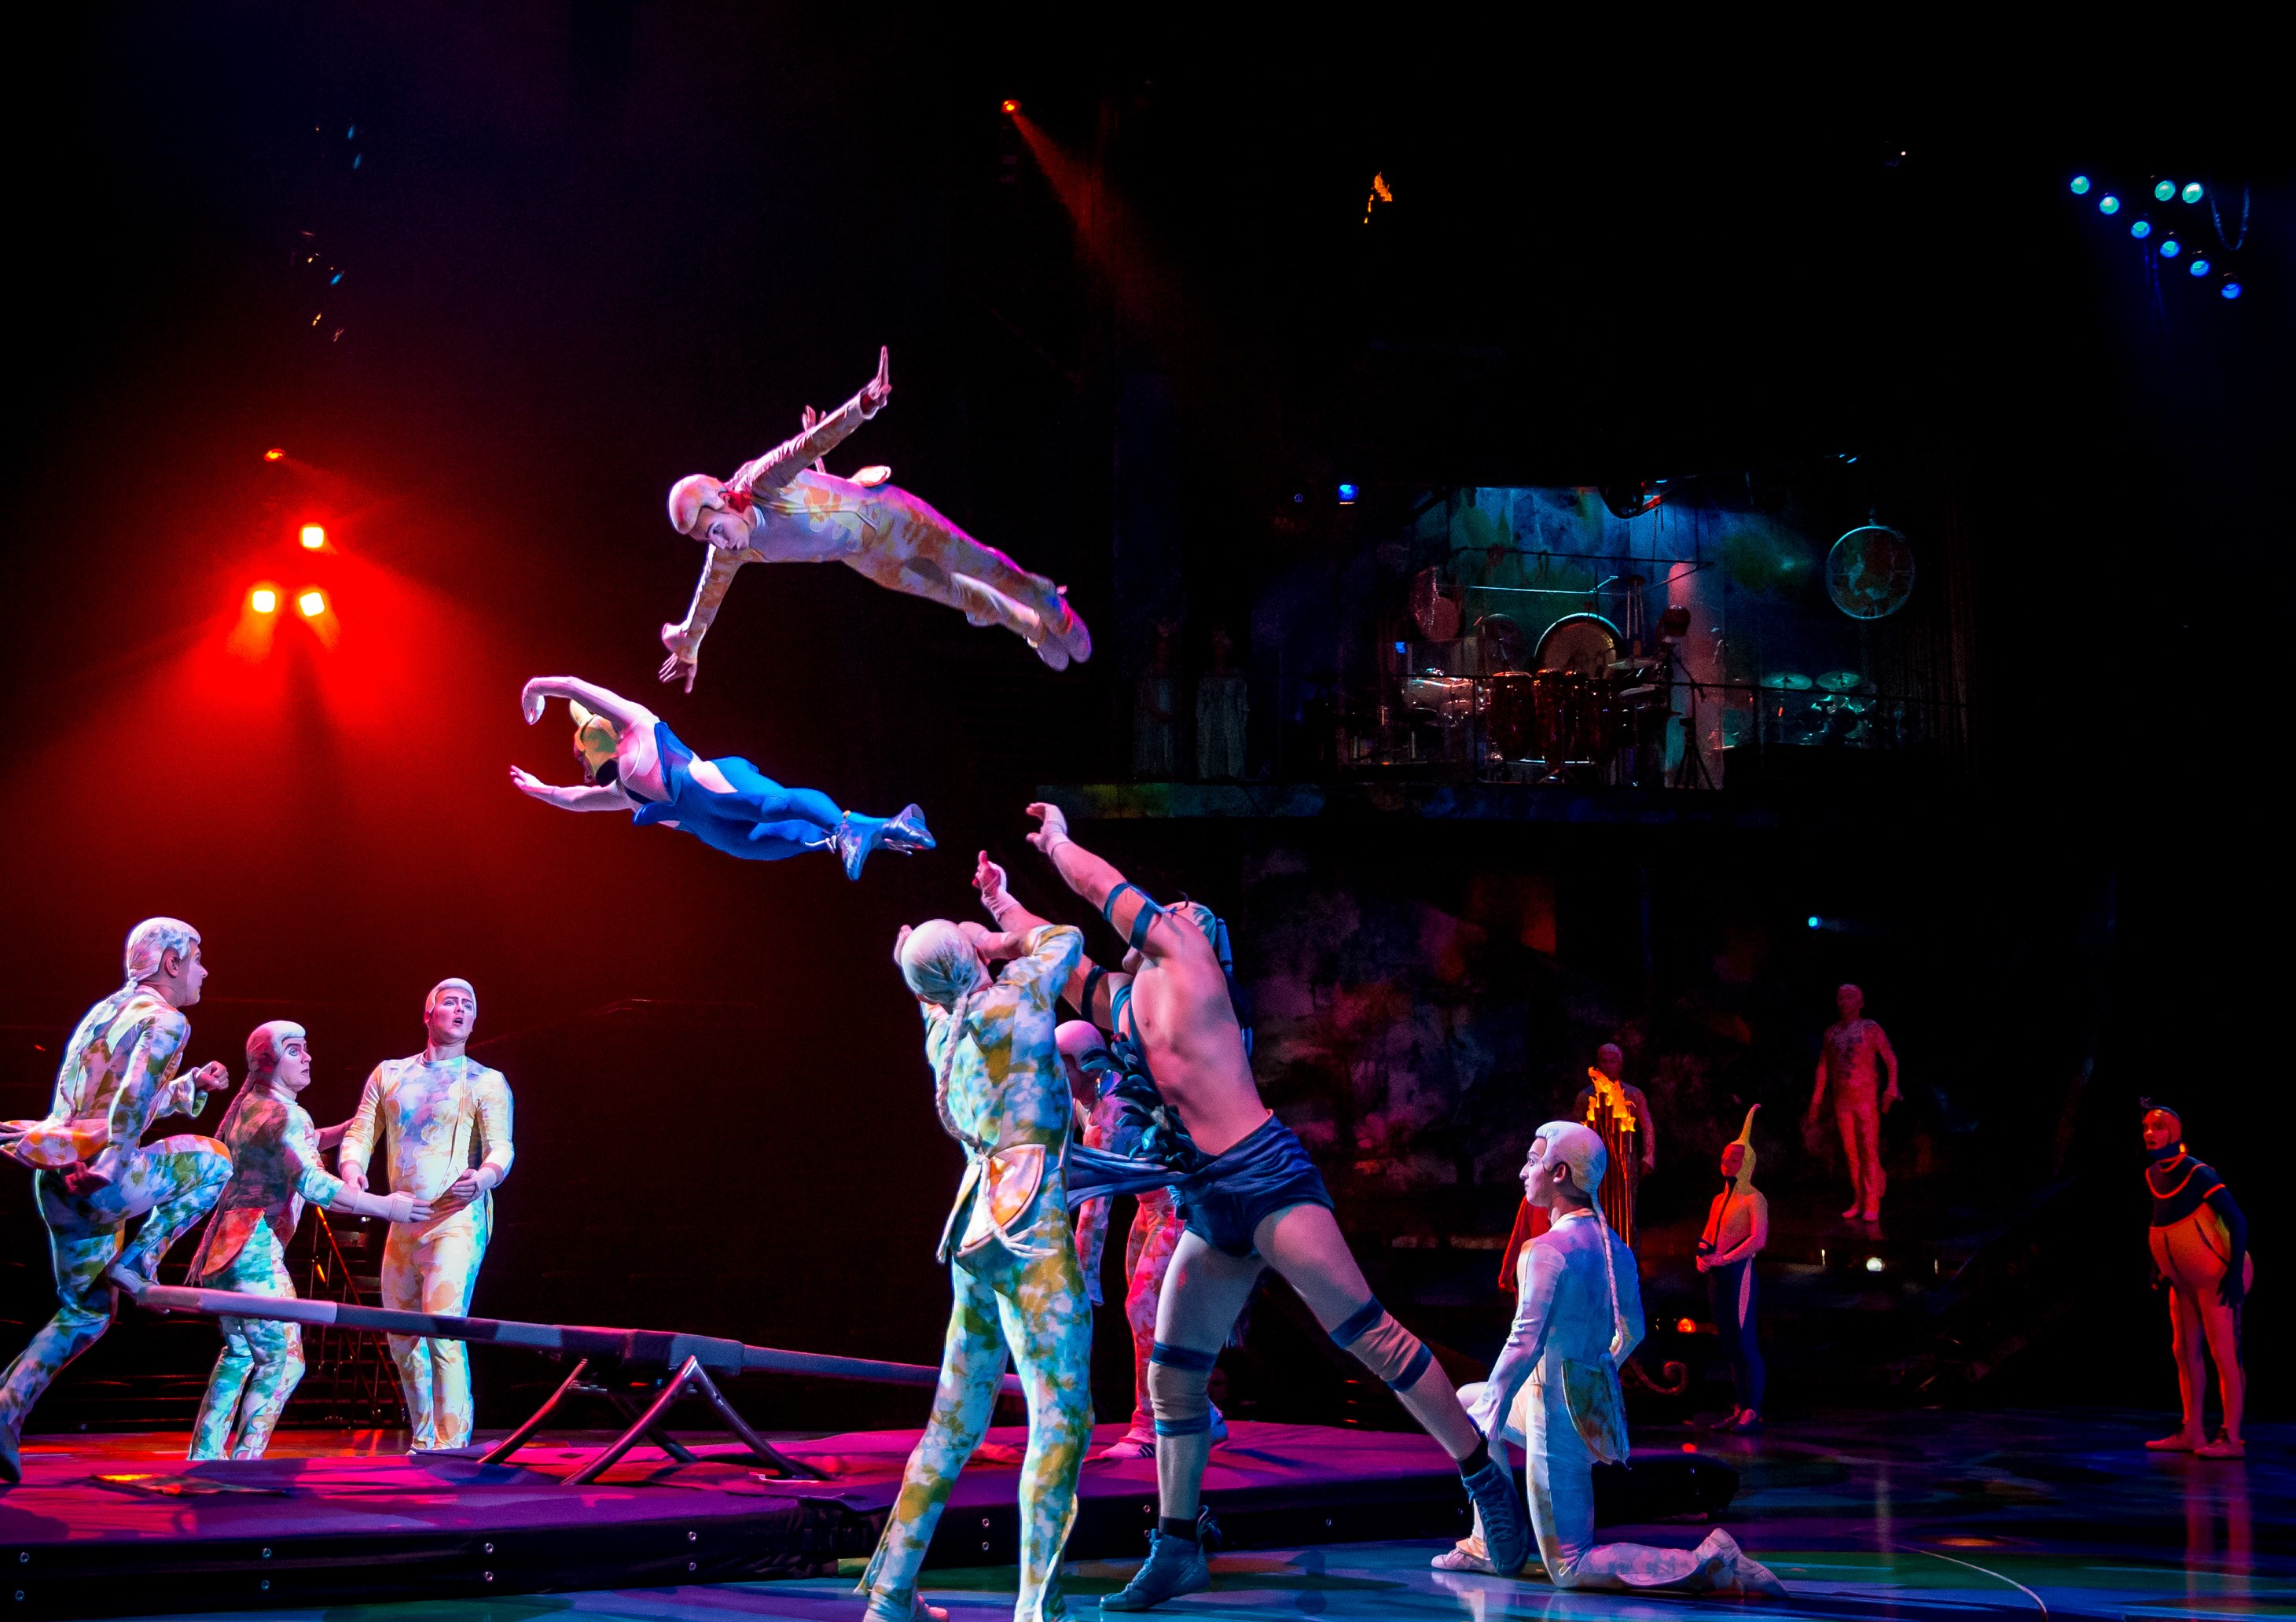 The teeterboard act in Mystère | Courtesy of Cirque du Soleil